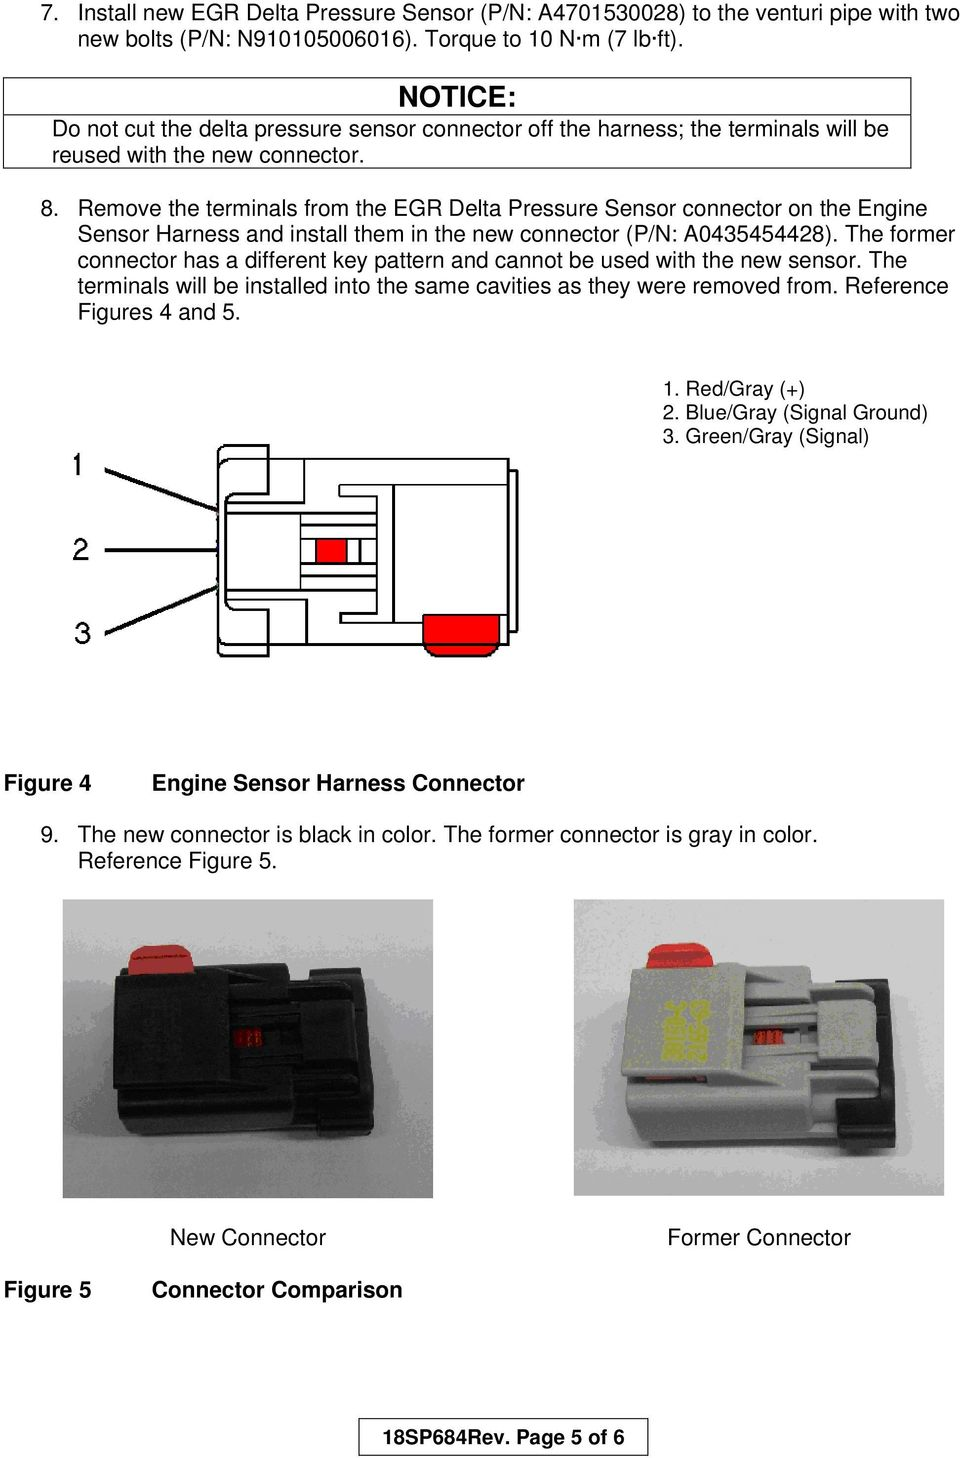 Remove the terminals from the EGR Delta Pressure Sensor connector on the Engine Sensor Harness and install them in the new connector (P/N: A0435454428).